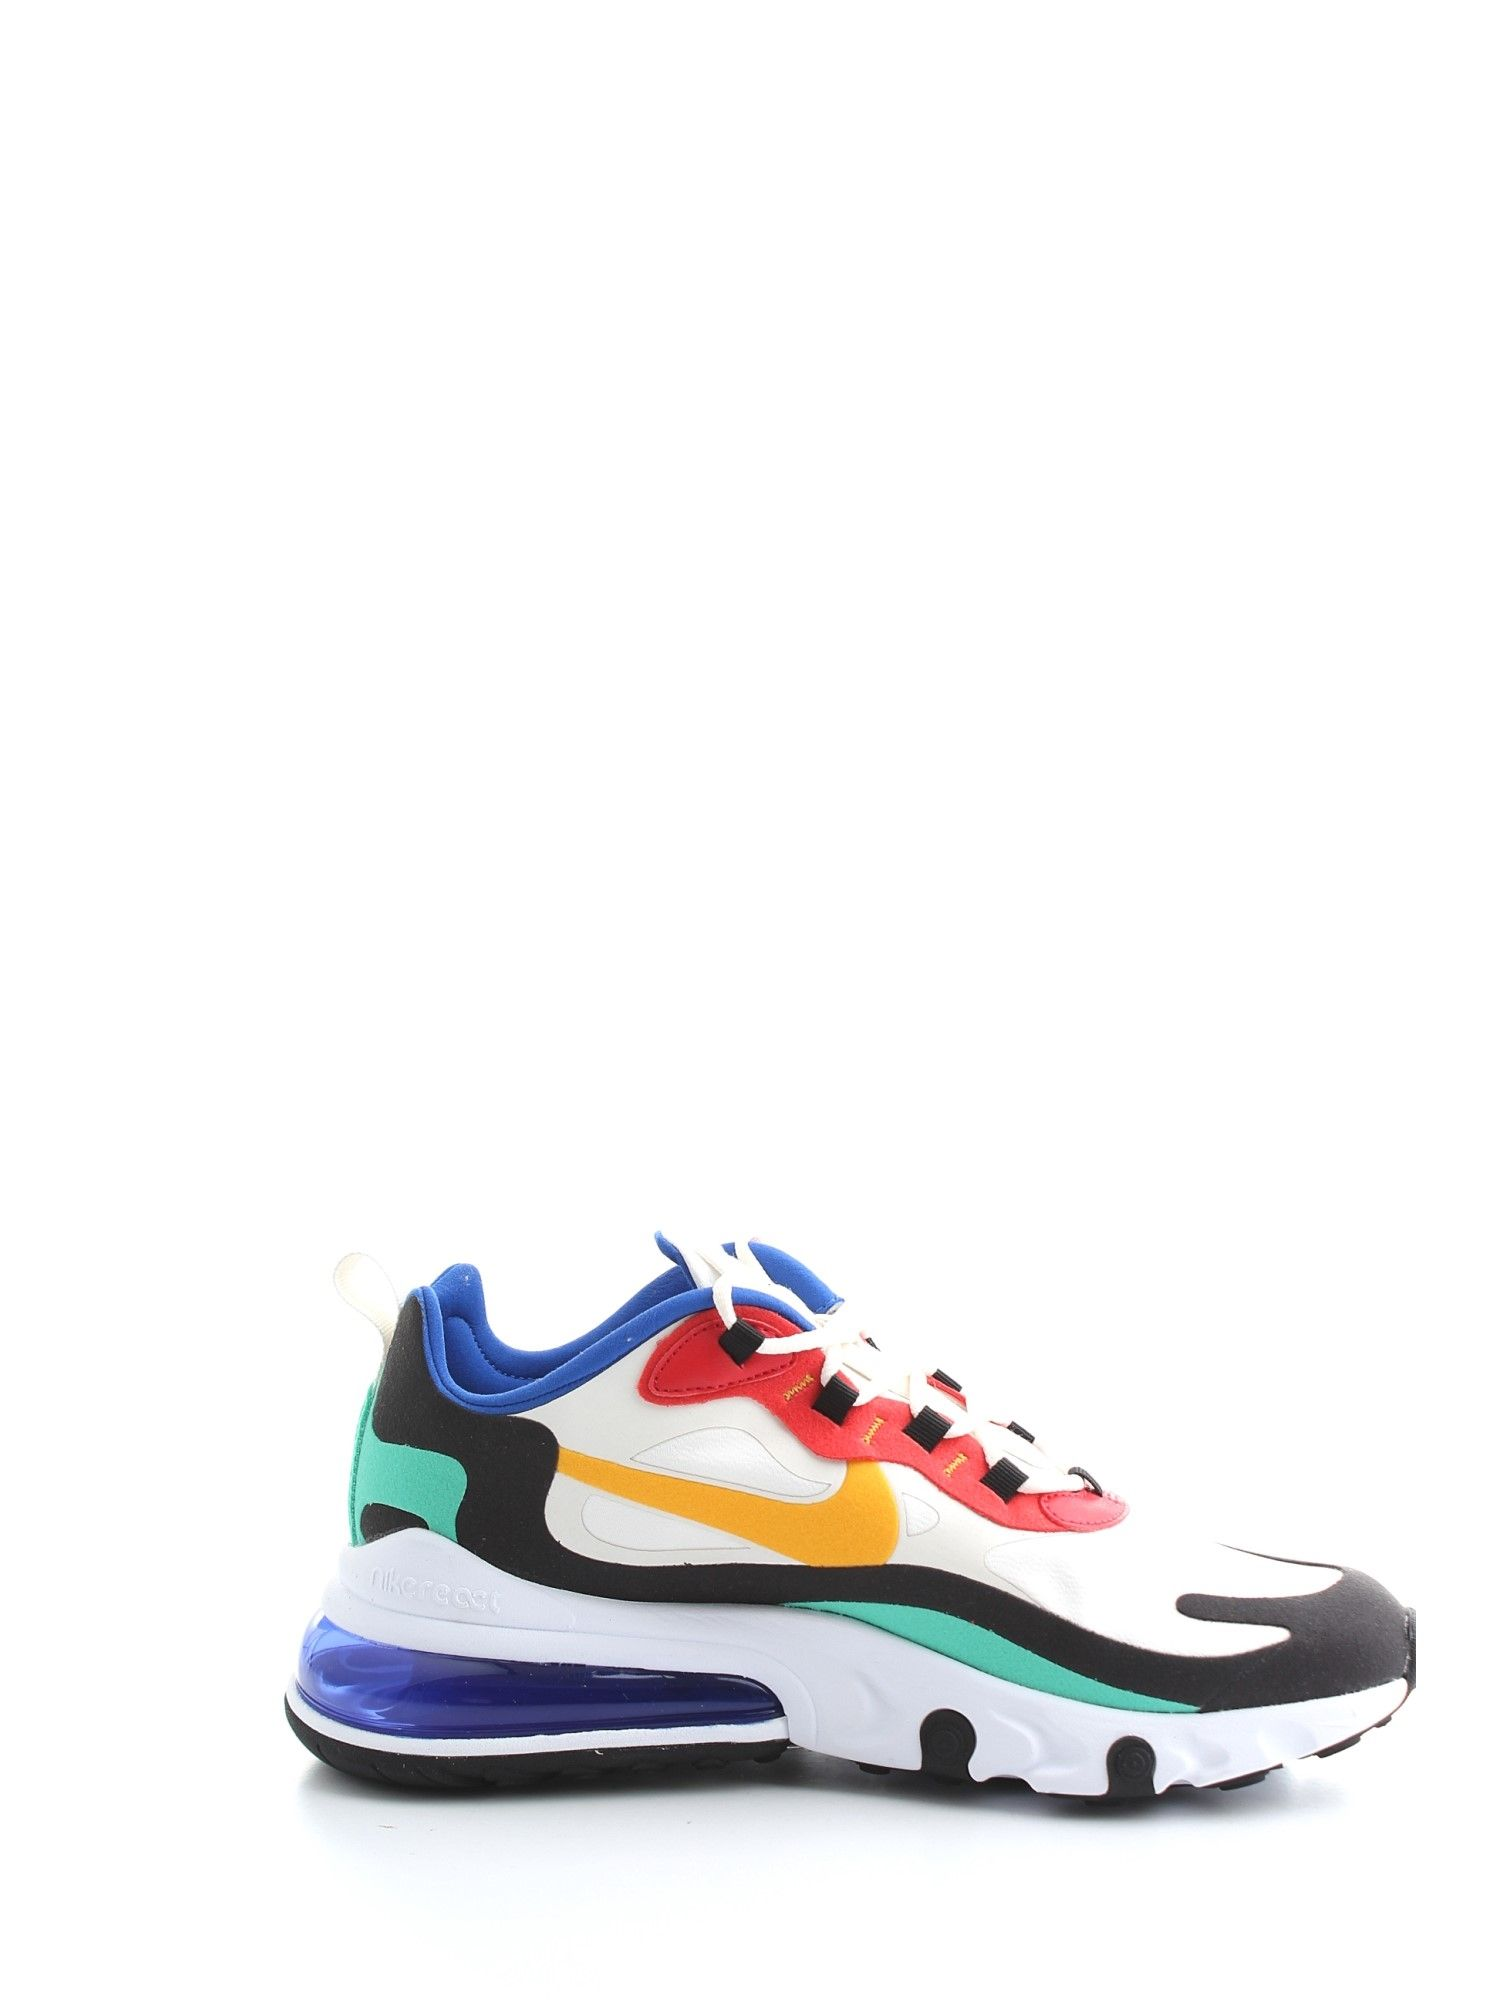 Nike Multicolor Leather Sneakers   ModeSens